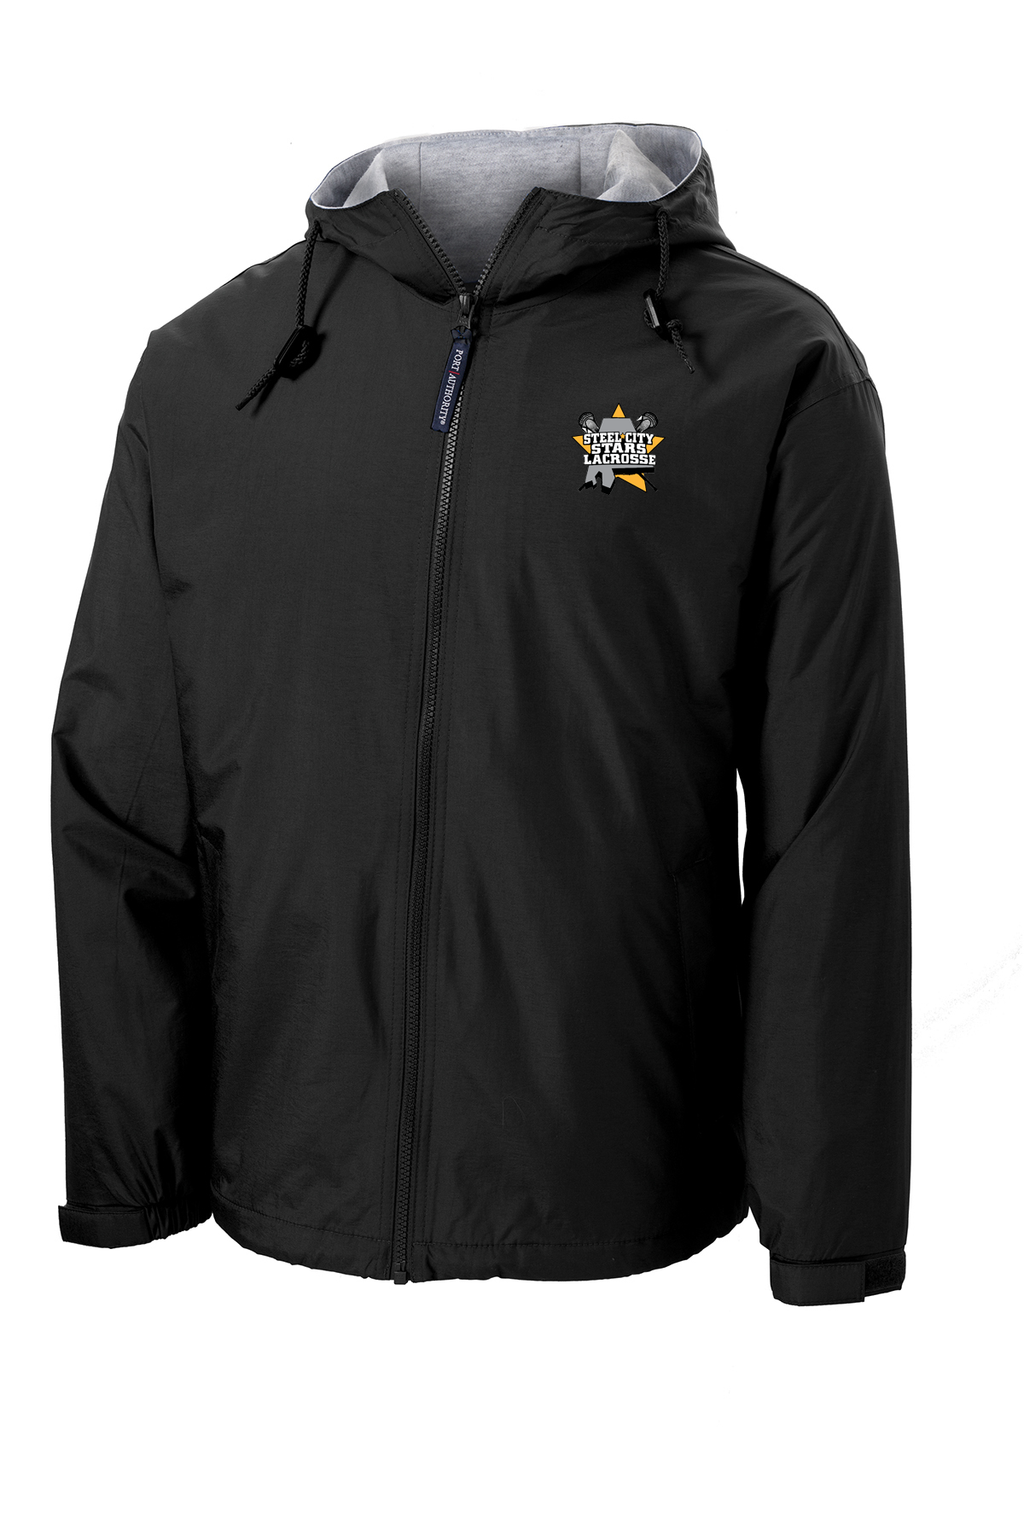 Stars Lacrosse Hooded Jacket